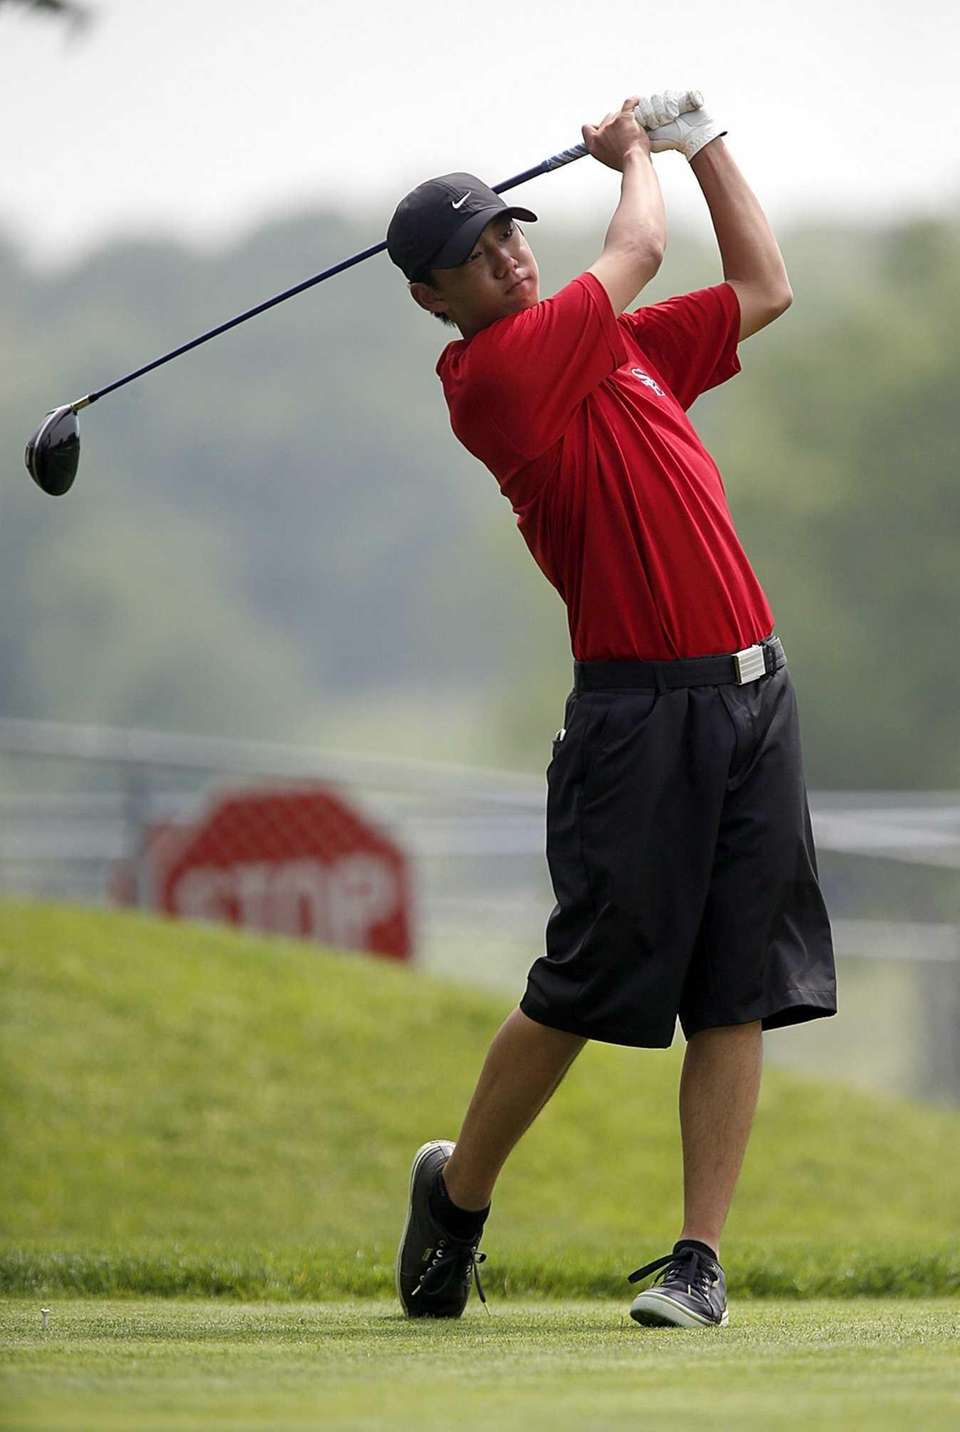 Smithtown East's Gilbert Chang tees off on the